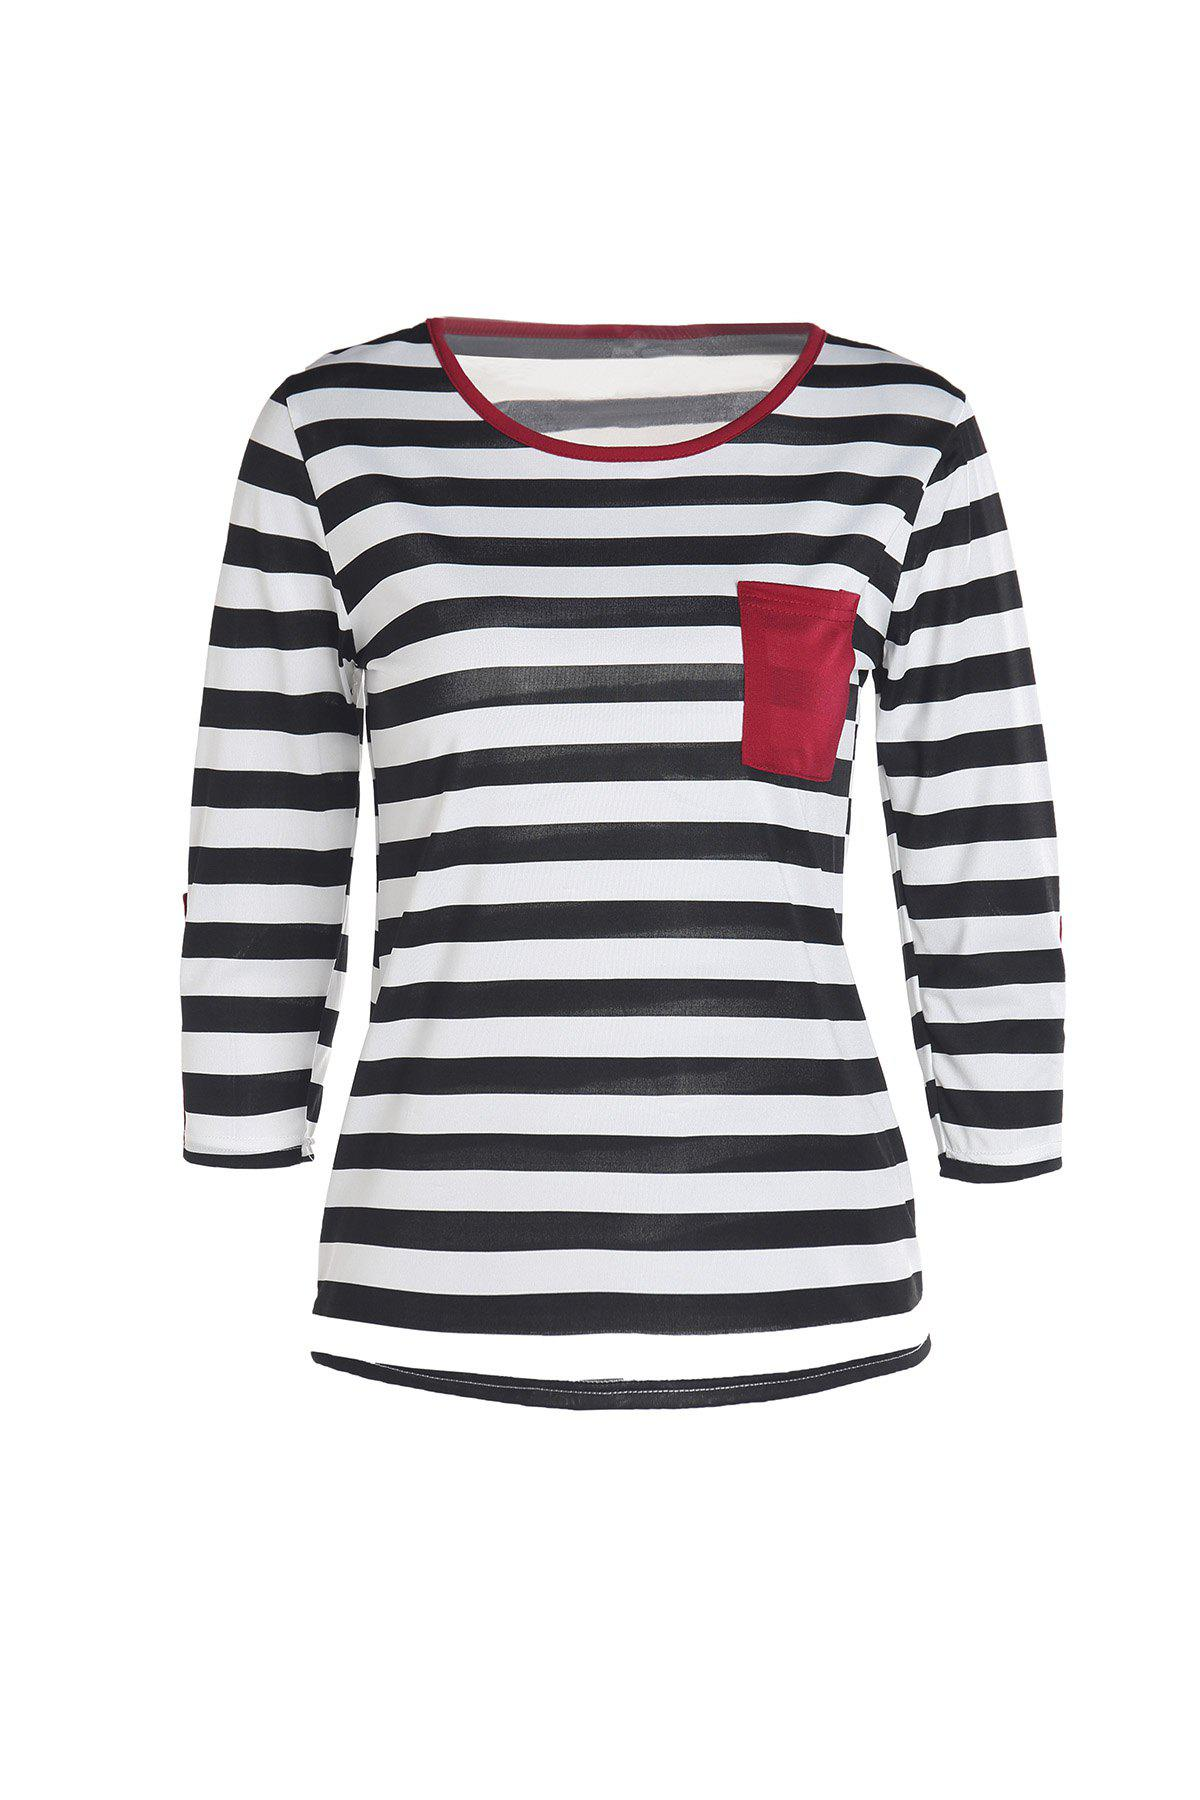 Stylish Scoop Neck Stripe Print Button Embellished 3/4 Sleeve Women's T-Shirt - STRIPE S